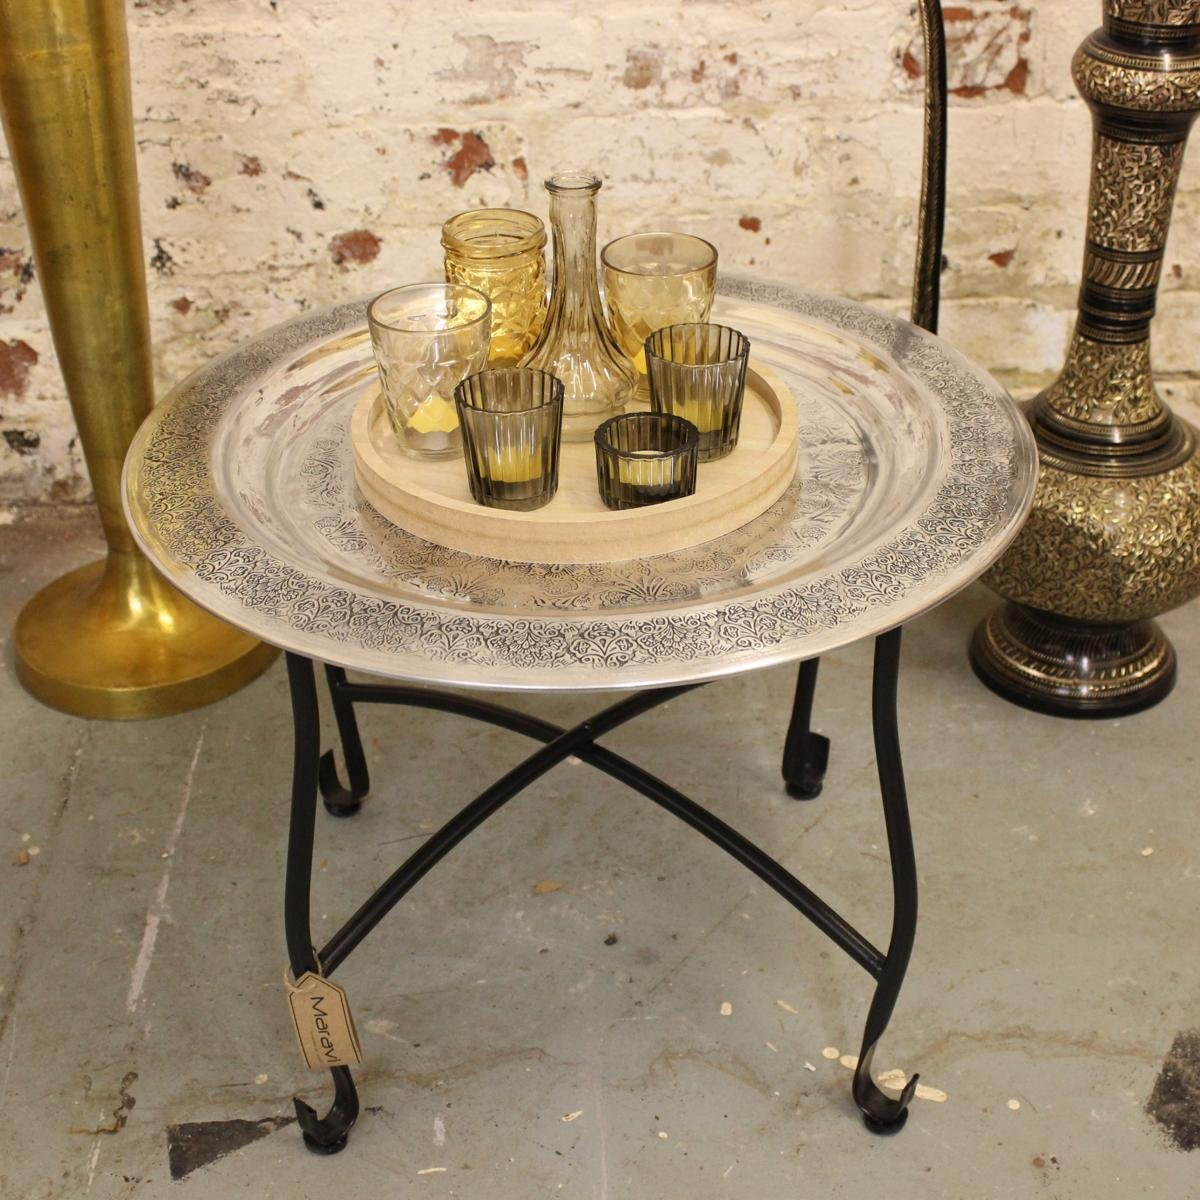 Girija 50cm Round Tray Table Side Morroccan Aluminium Floral Stamped Design